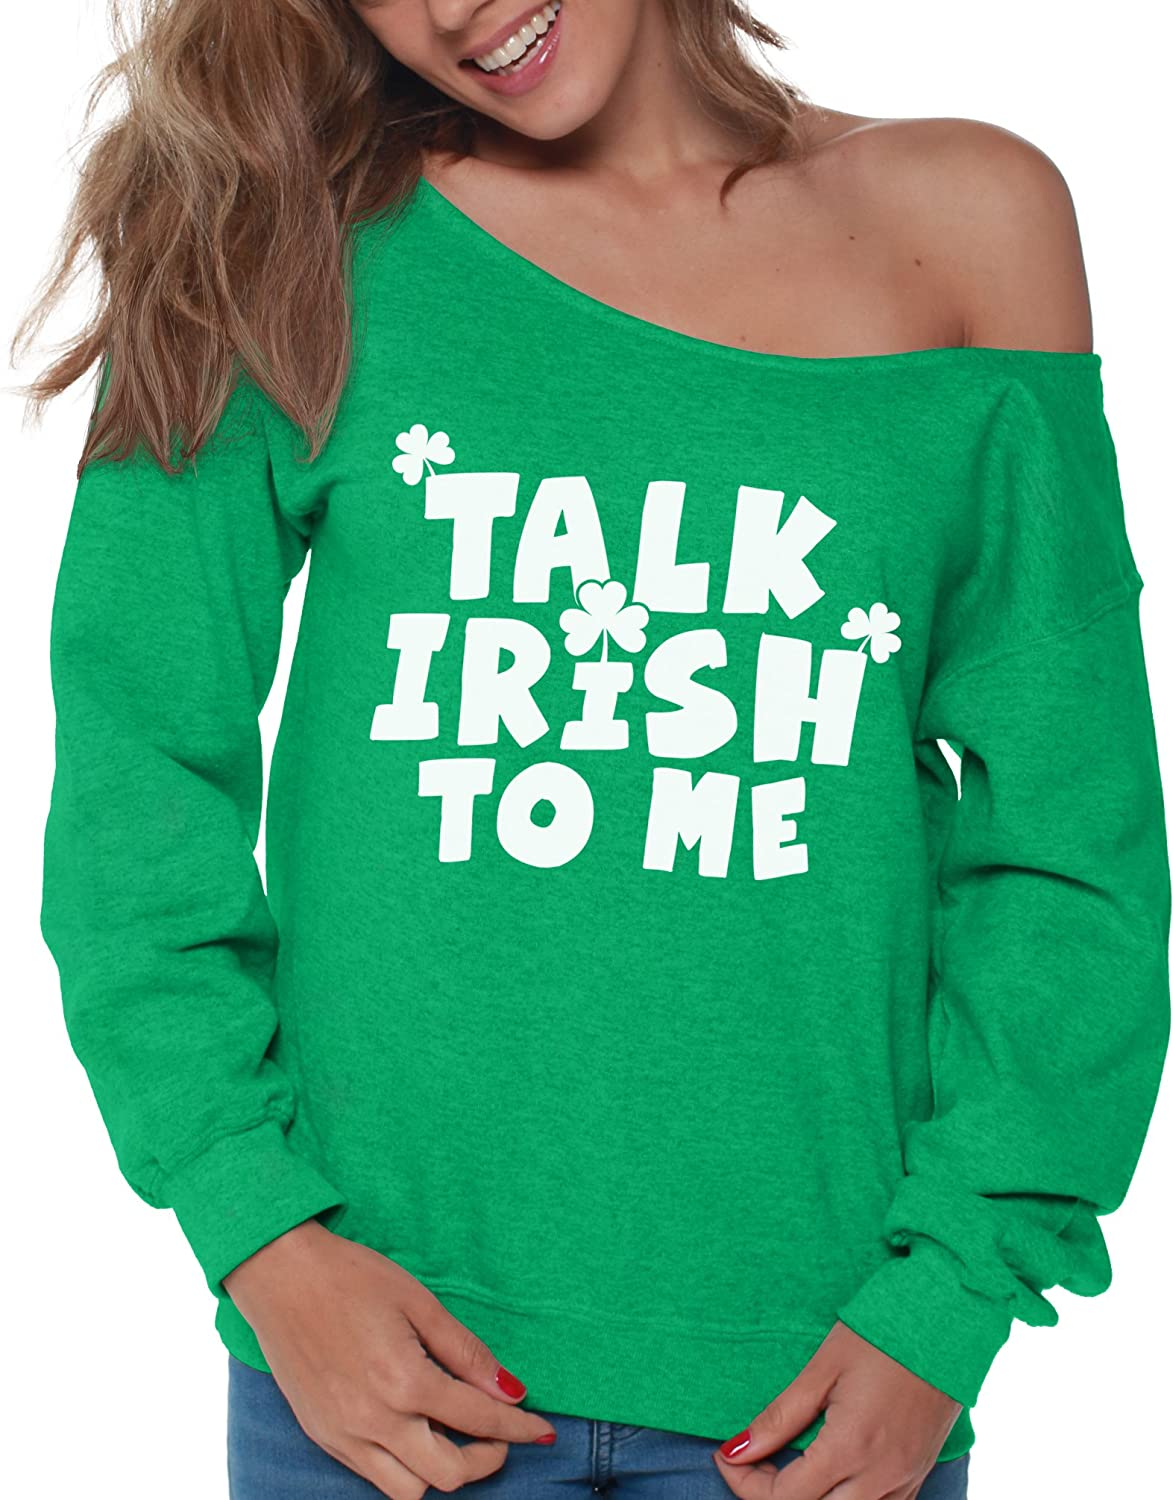 Vizor Talk Irish to Me Off Shoulder Sweatshirt Funny Irish Party Outfits for Her